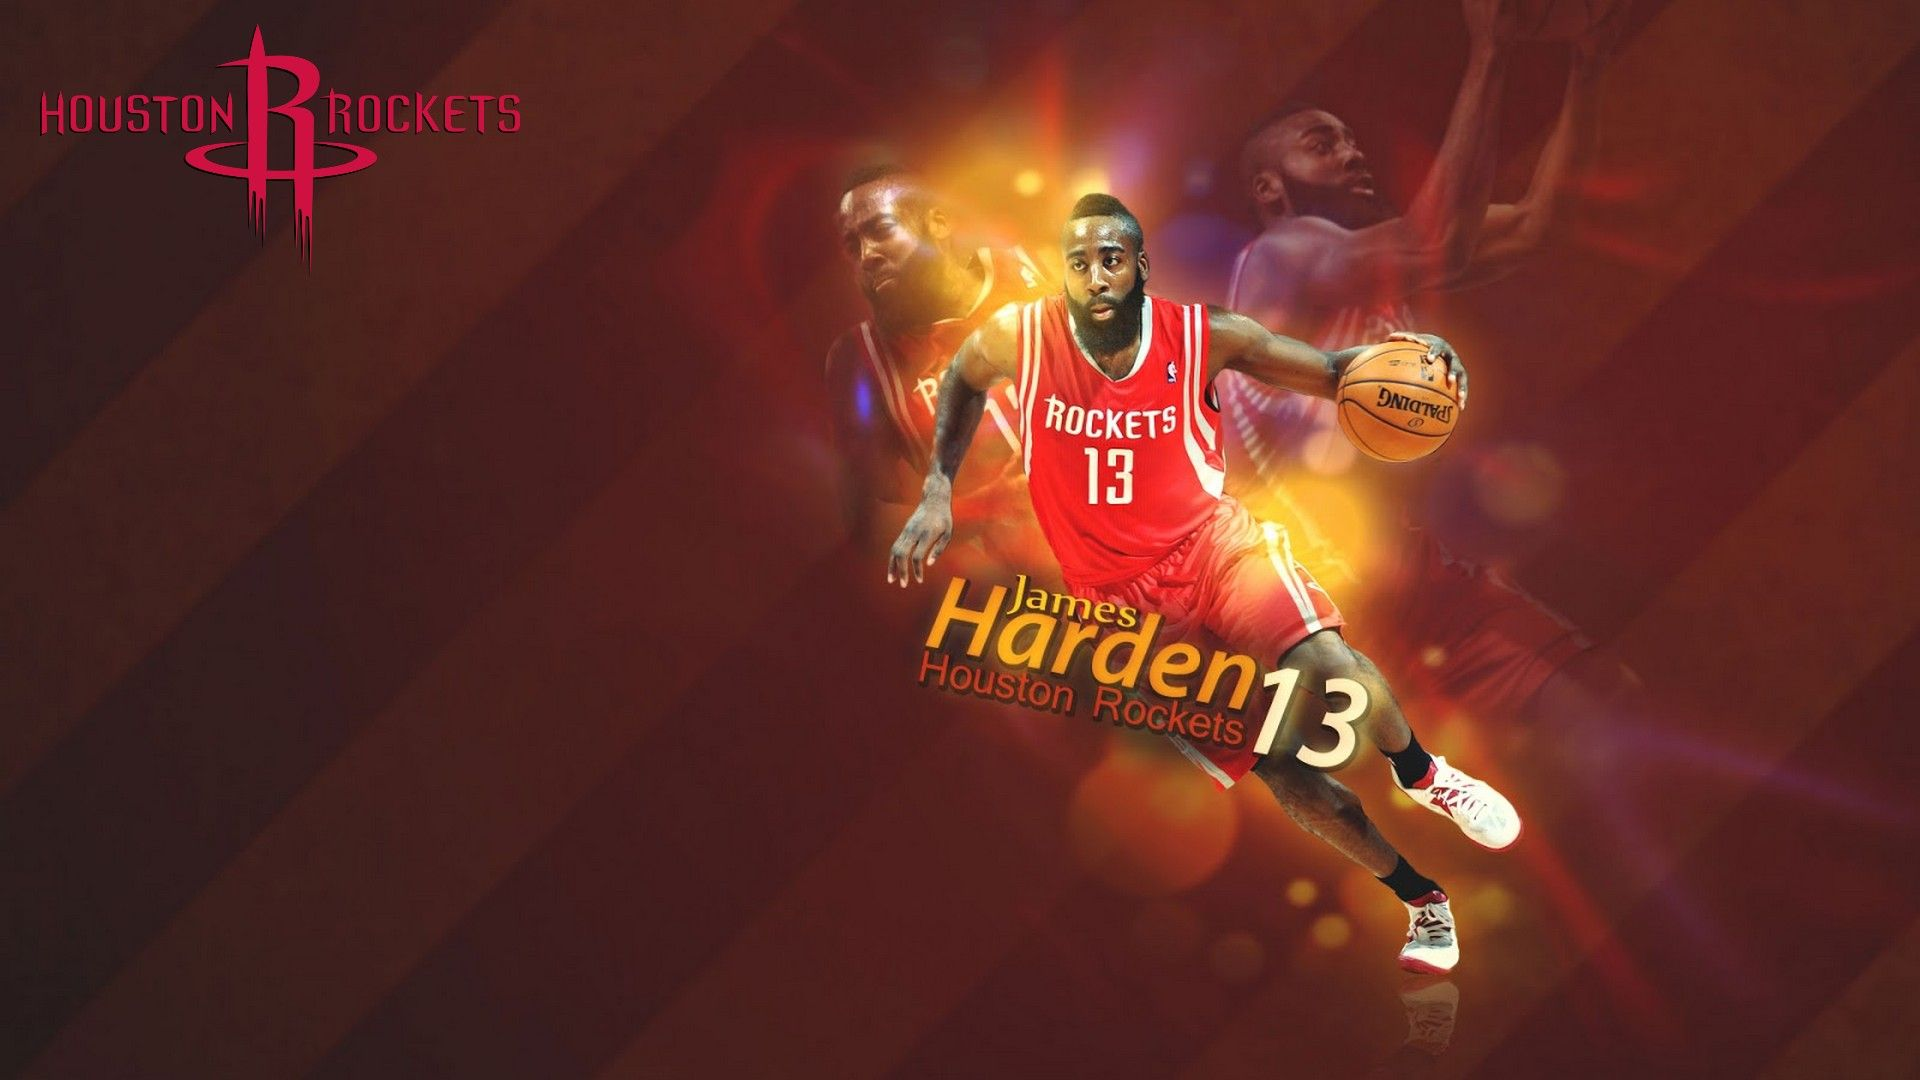 Windows Wallpaper James Harden is the perfect High Quality